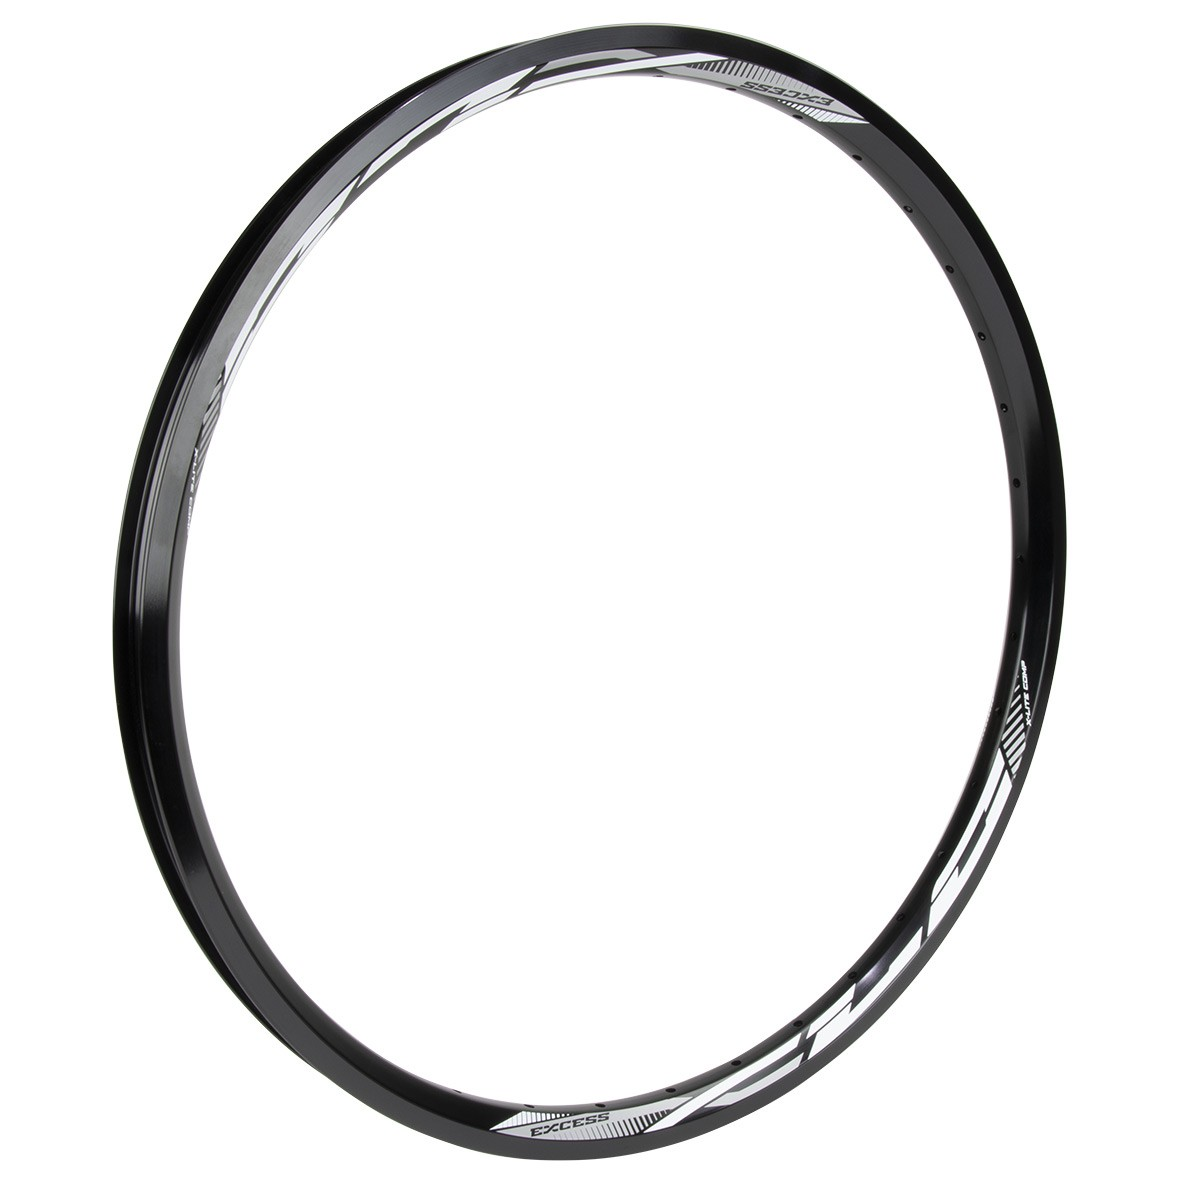 EXCESS XLC ALLOY RIM OS20 451X28MM 36H WITH BRAKE SURFACE